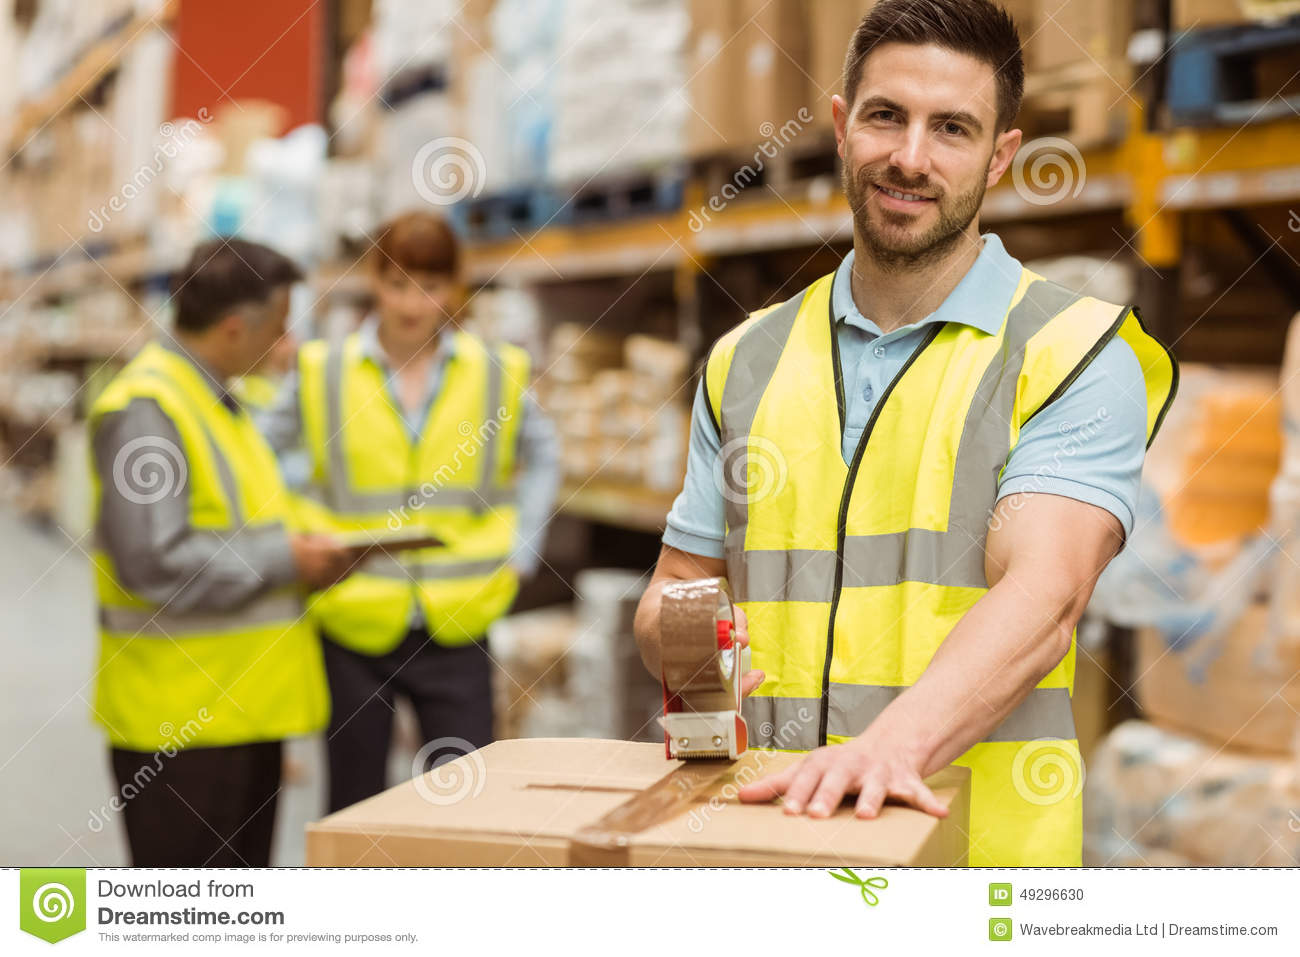 Smiling warehouse workers preparing a shipment